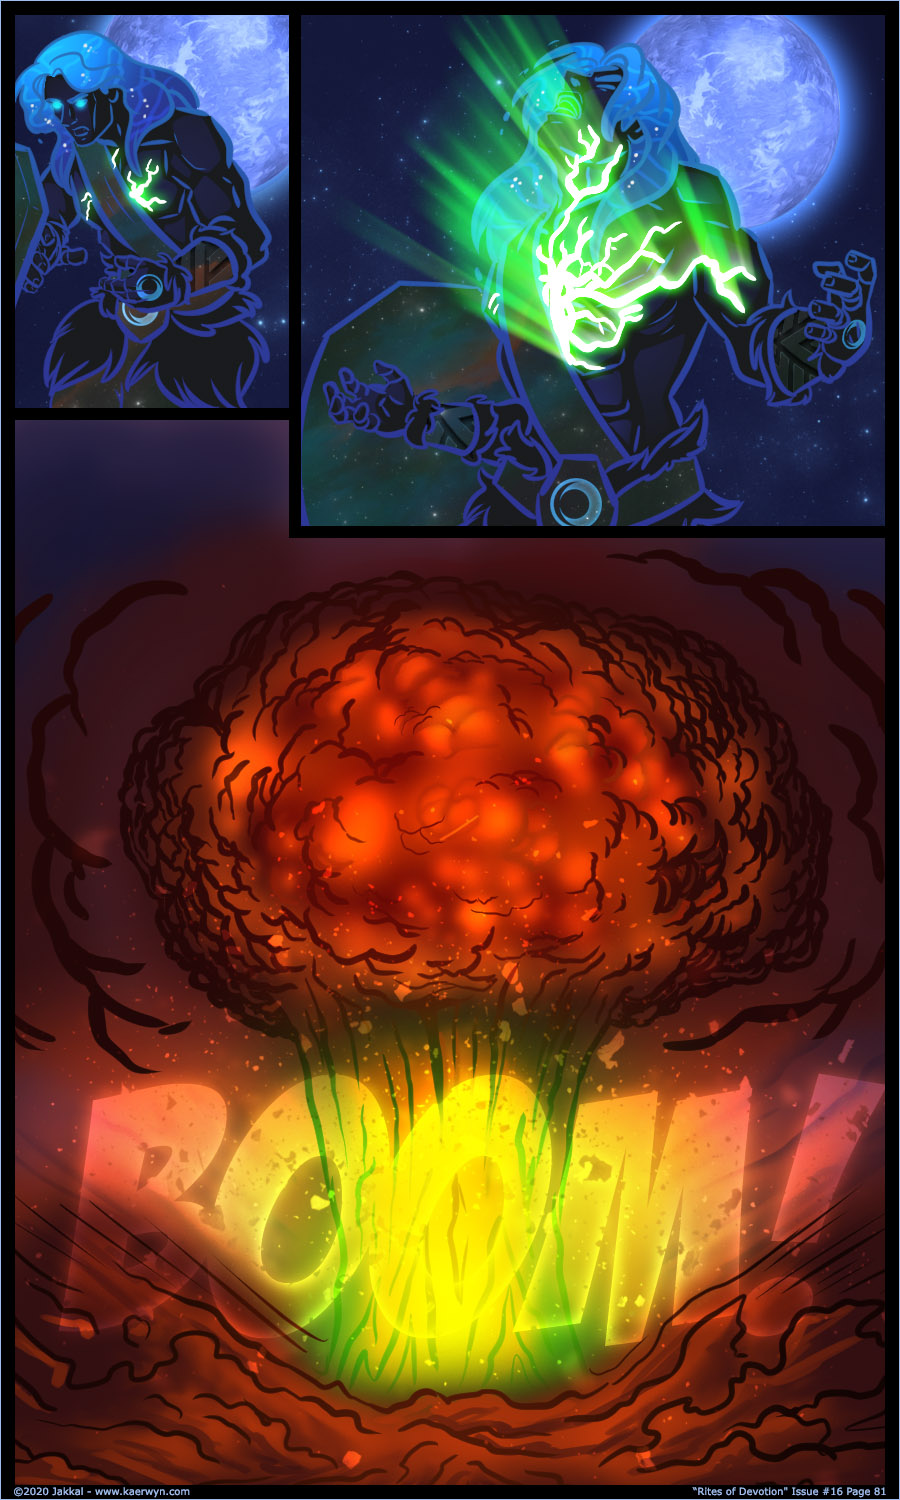 Issue 16 Page 81